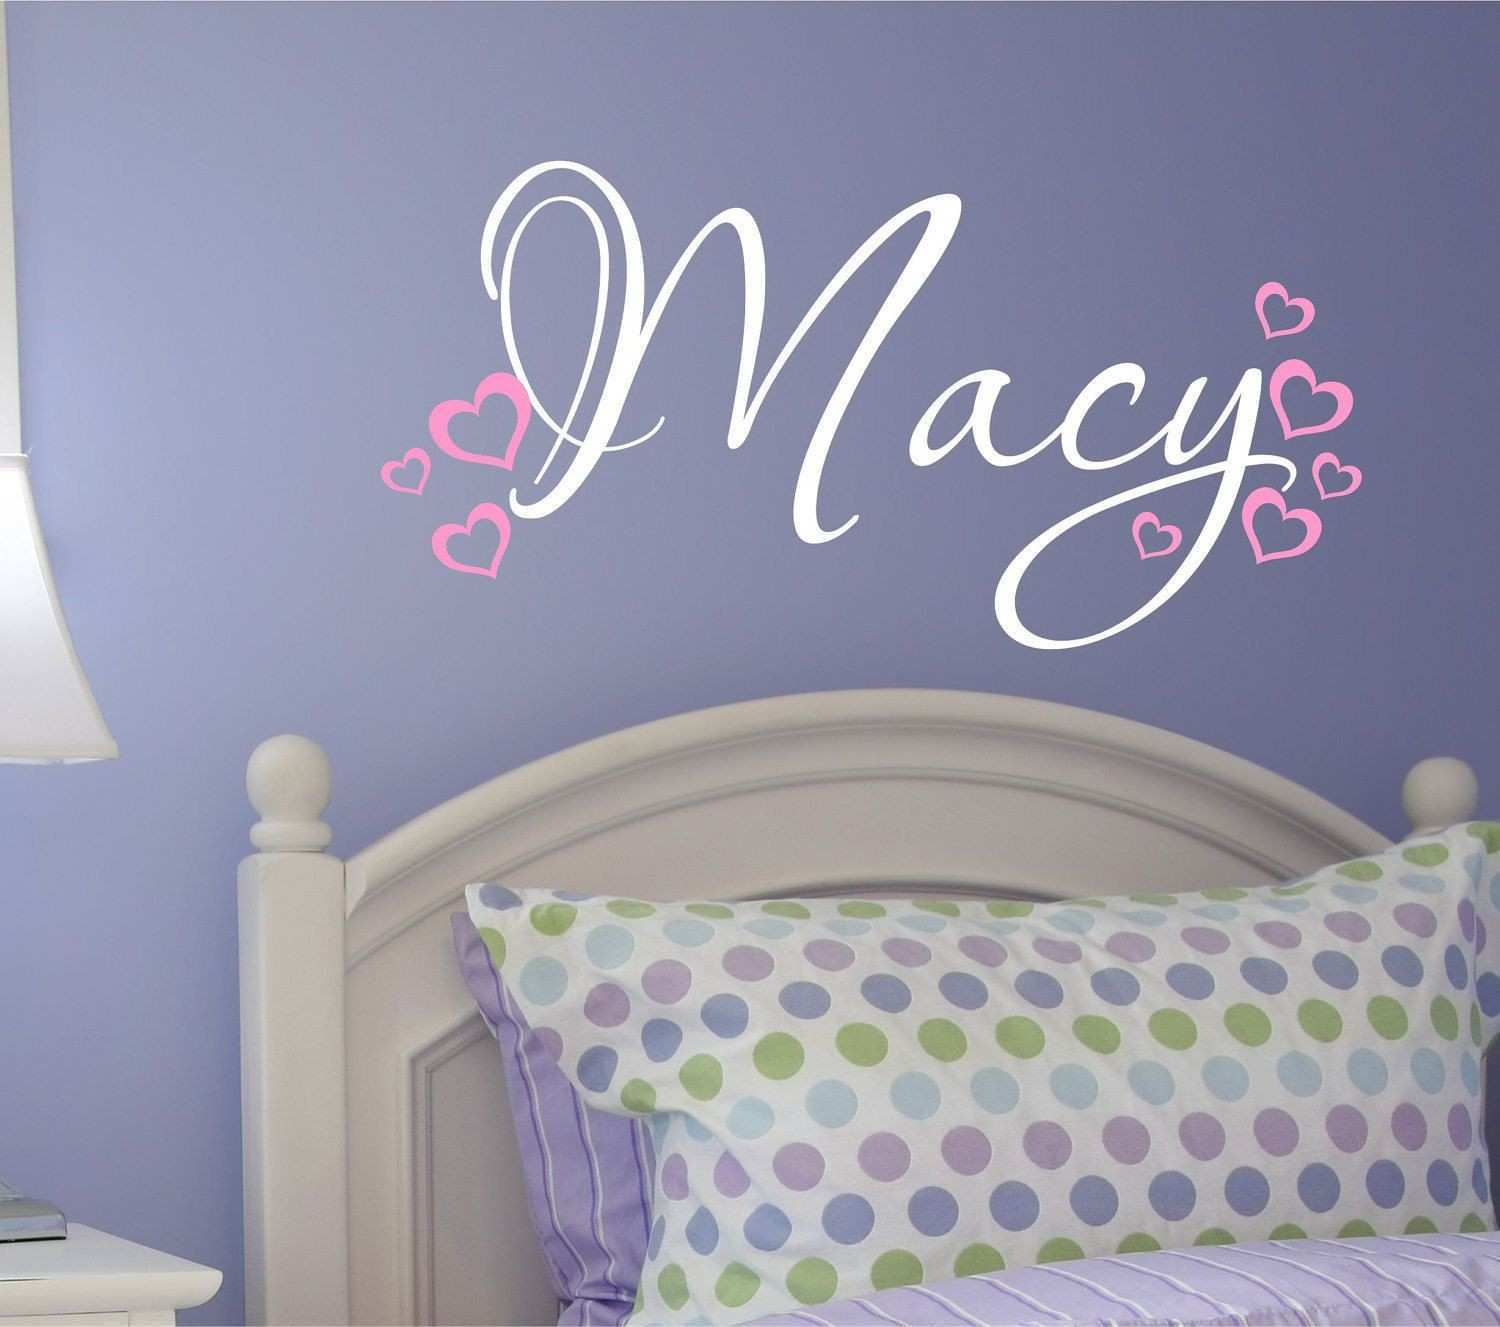 43 Beautiful Monogram Wall Decals